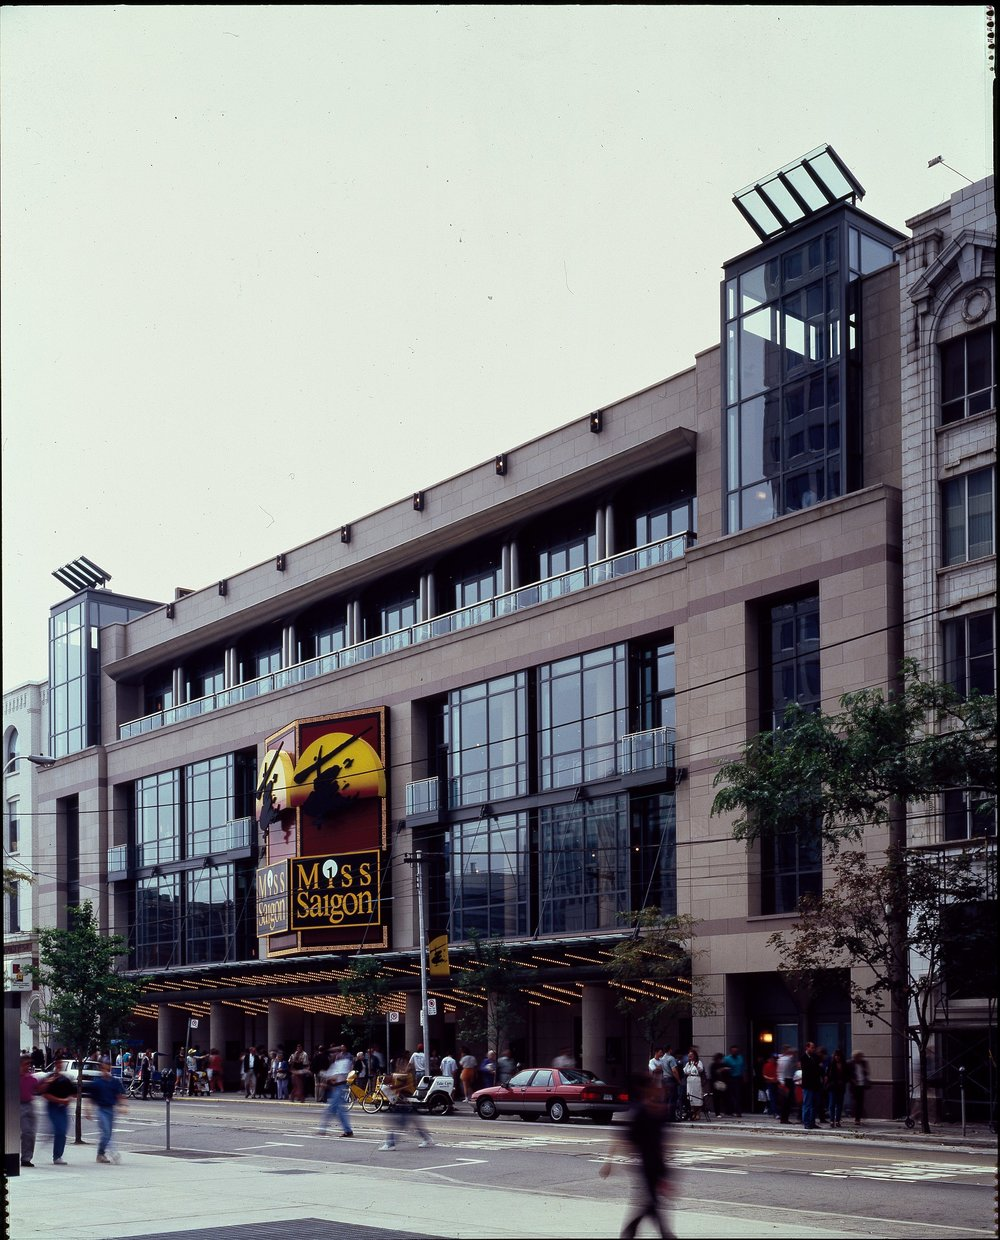 Princess of Wales Theatre Exterior copy.jpg